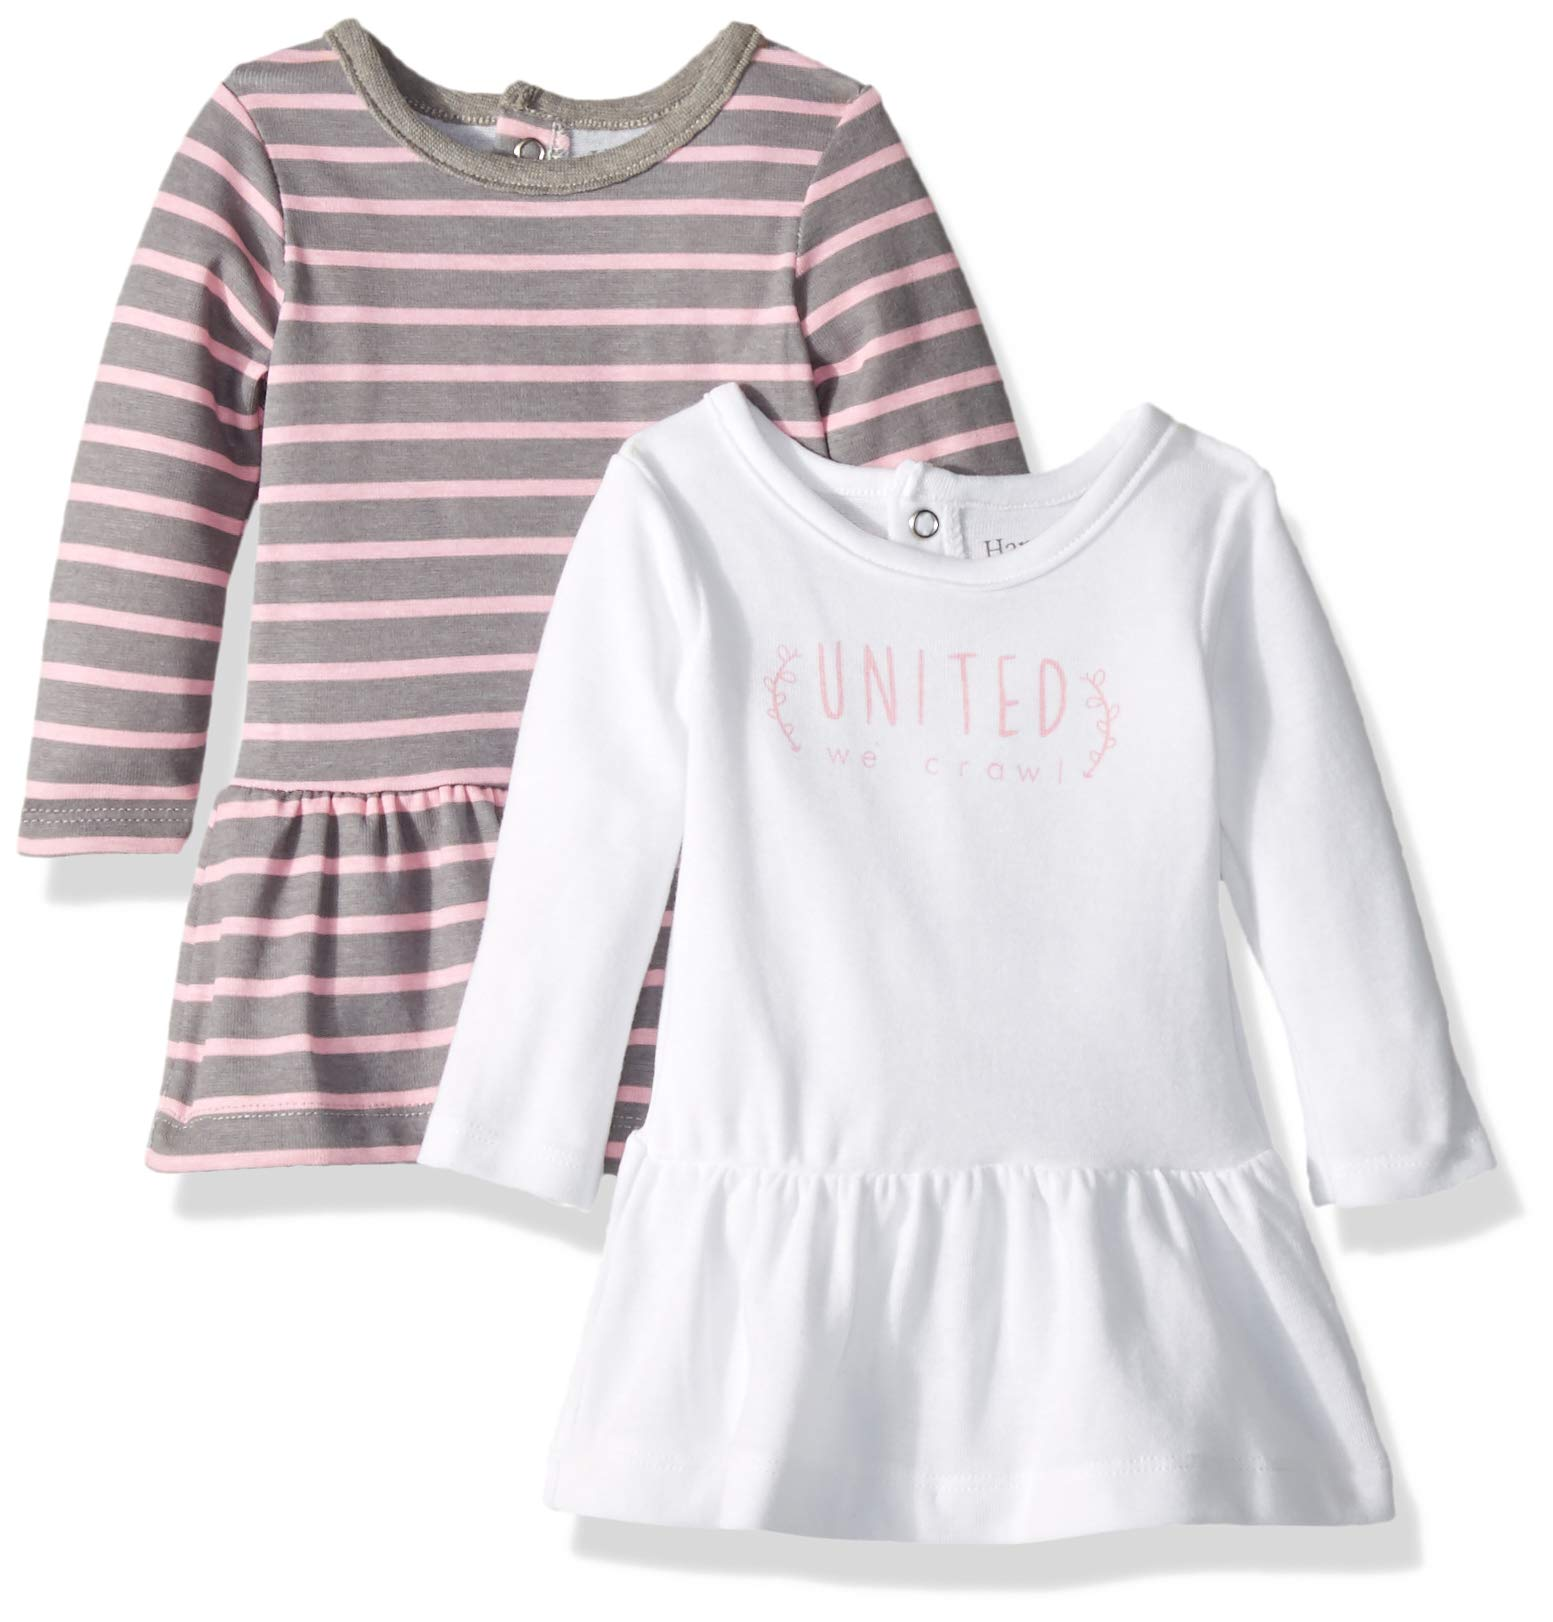 Hanes Ultimate Baby Flexy 2 Pack Knit Long Sleeve Dresses, Steel/Pink Stripe, 18-24 Months by Hanes